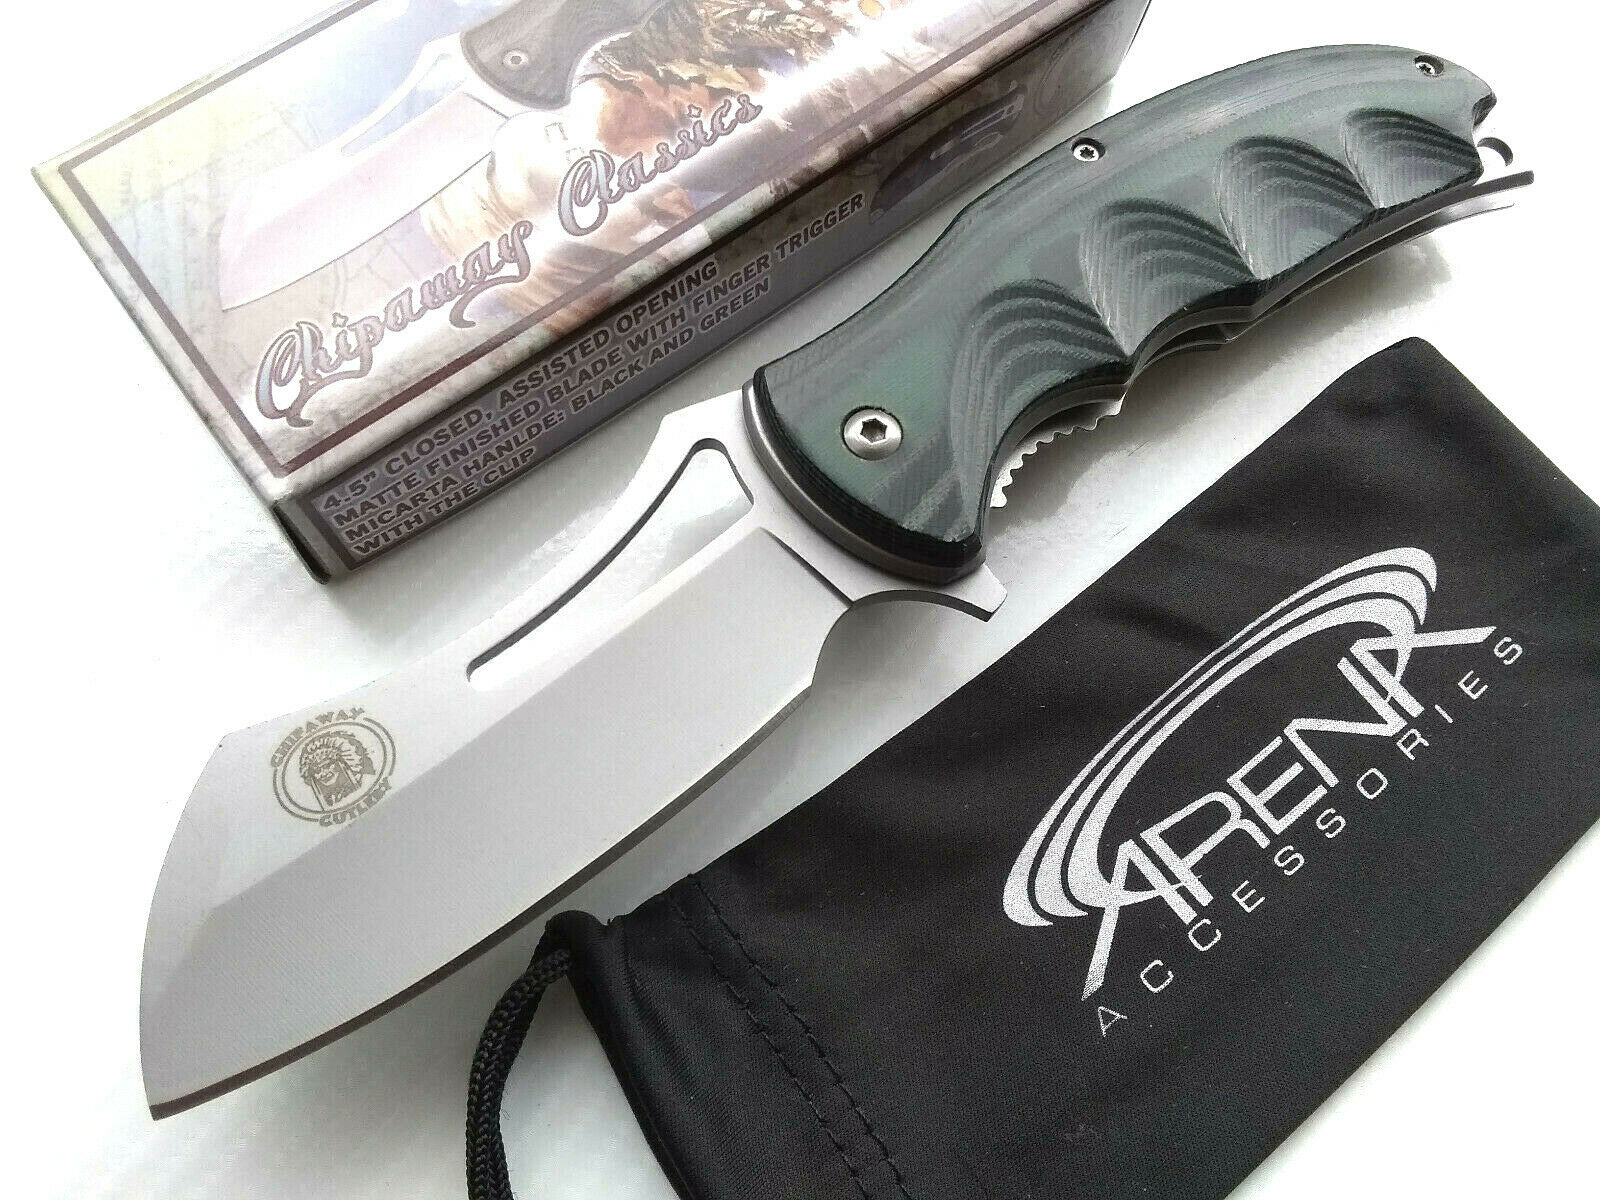 Green Micarta Spring Assisted Pocket Knife Cleaver Blade Deep Carry Flipper EDC